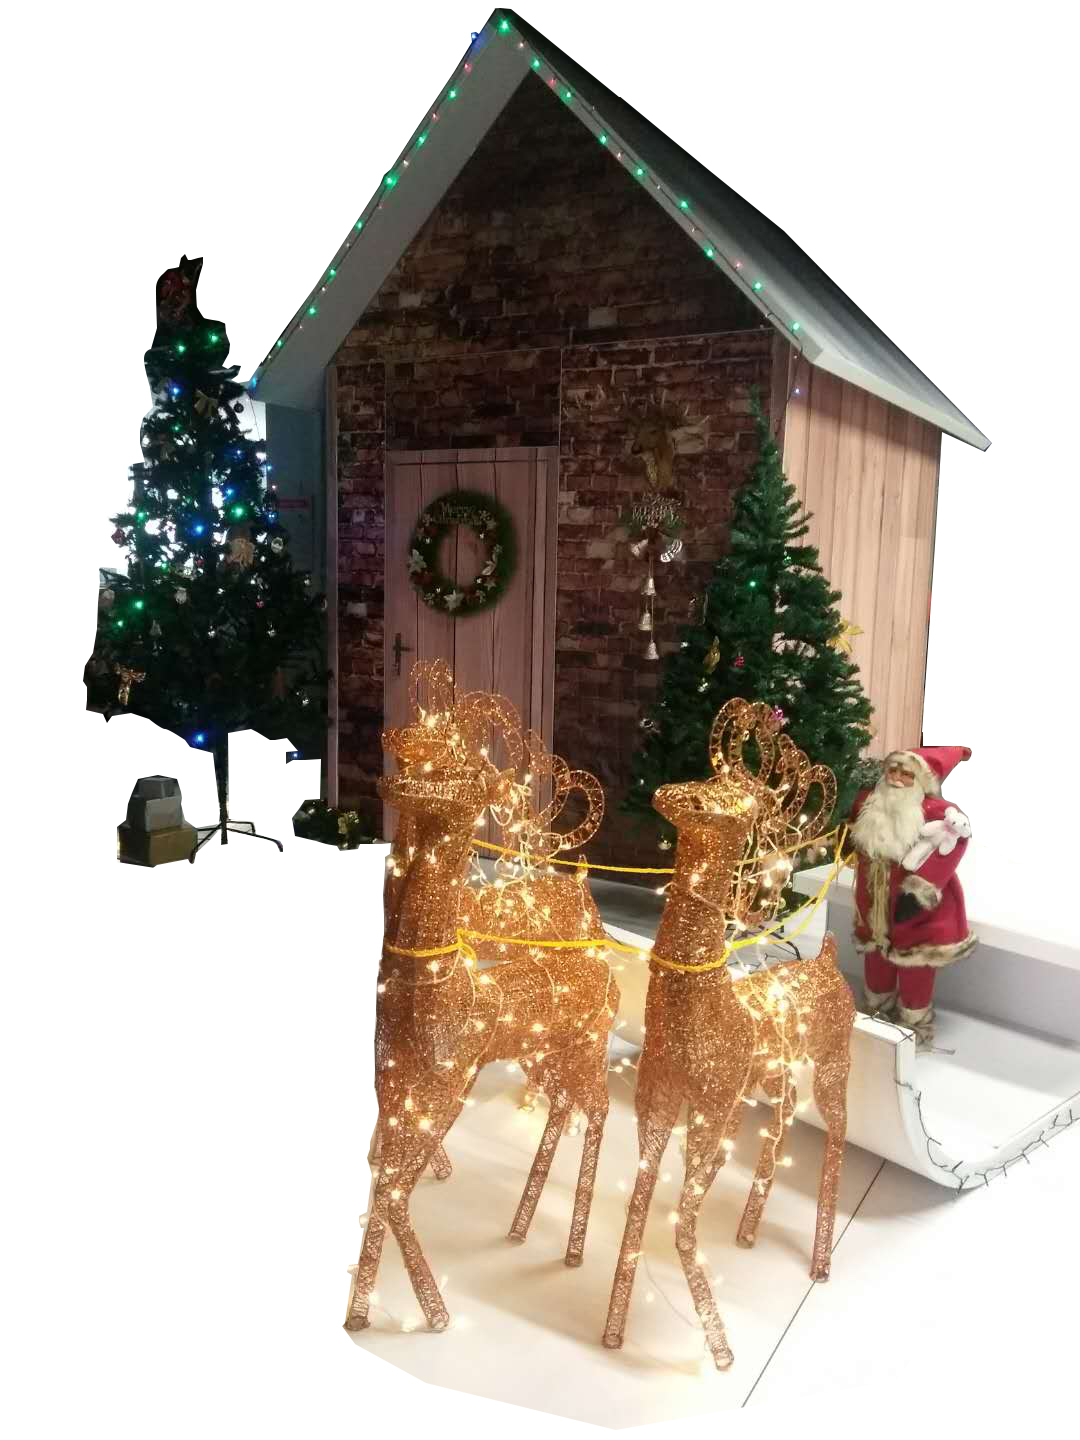 Modular m series systems that can be used as Christmas houses, castles, and custom trade show booths